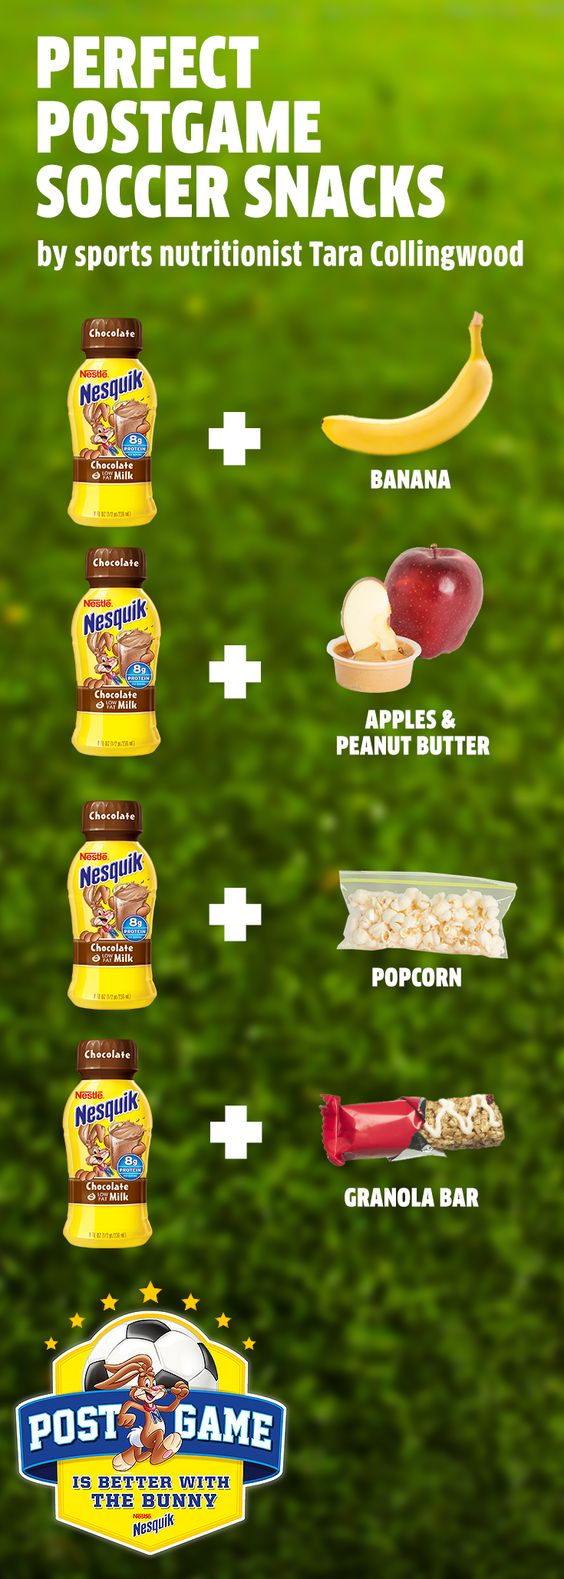 "As team mom there's a lot to worry about — so we teamed up with sports nutritionist Tara Collingwood, MS, RDN, CSSD to create a ""tip sheet"" full of healthy postgame snack ideas. Pair a Nesquik with one of these nutritious options for an all-around balanced snack for young soccer stars. Research shows that low-fat chocolate milk, with the ideal 3:1 ratio of carbohydrates to protein, is a great option to nourish tired muscles after prolonged activity. The team will love these winning combos!"